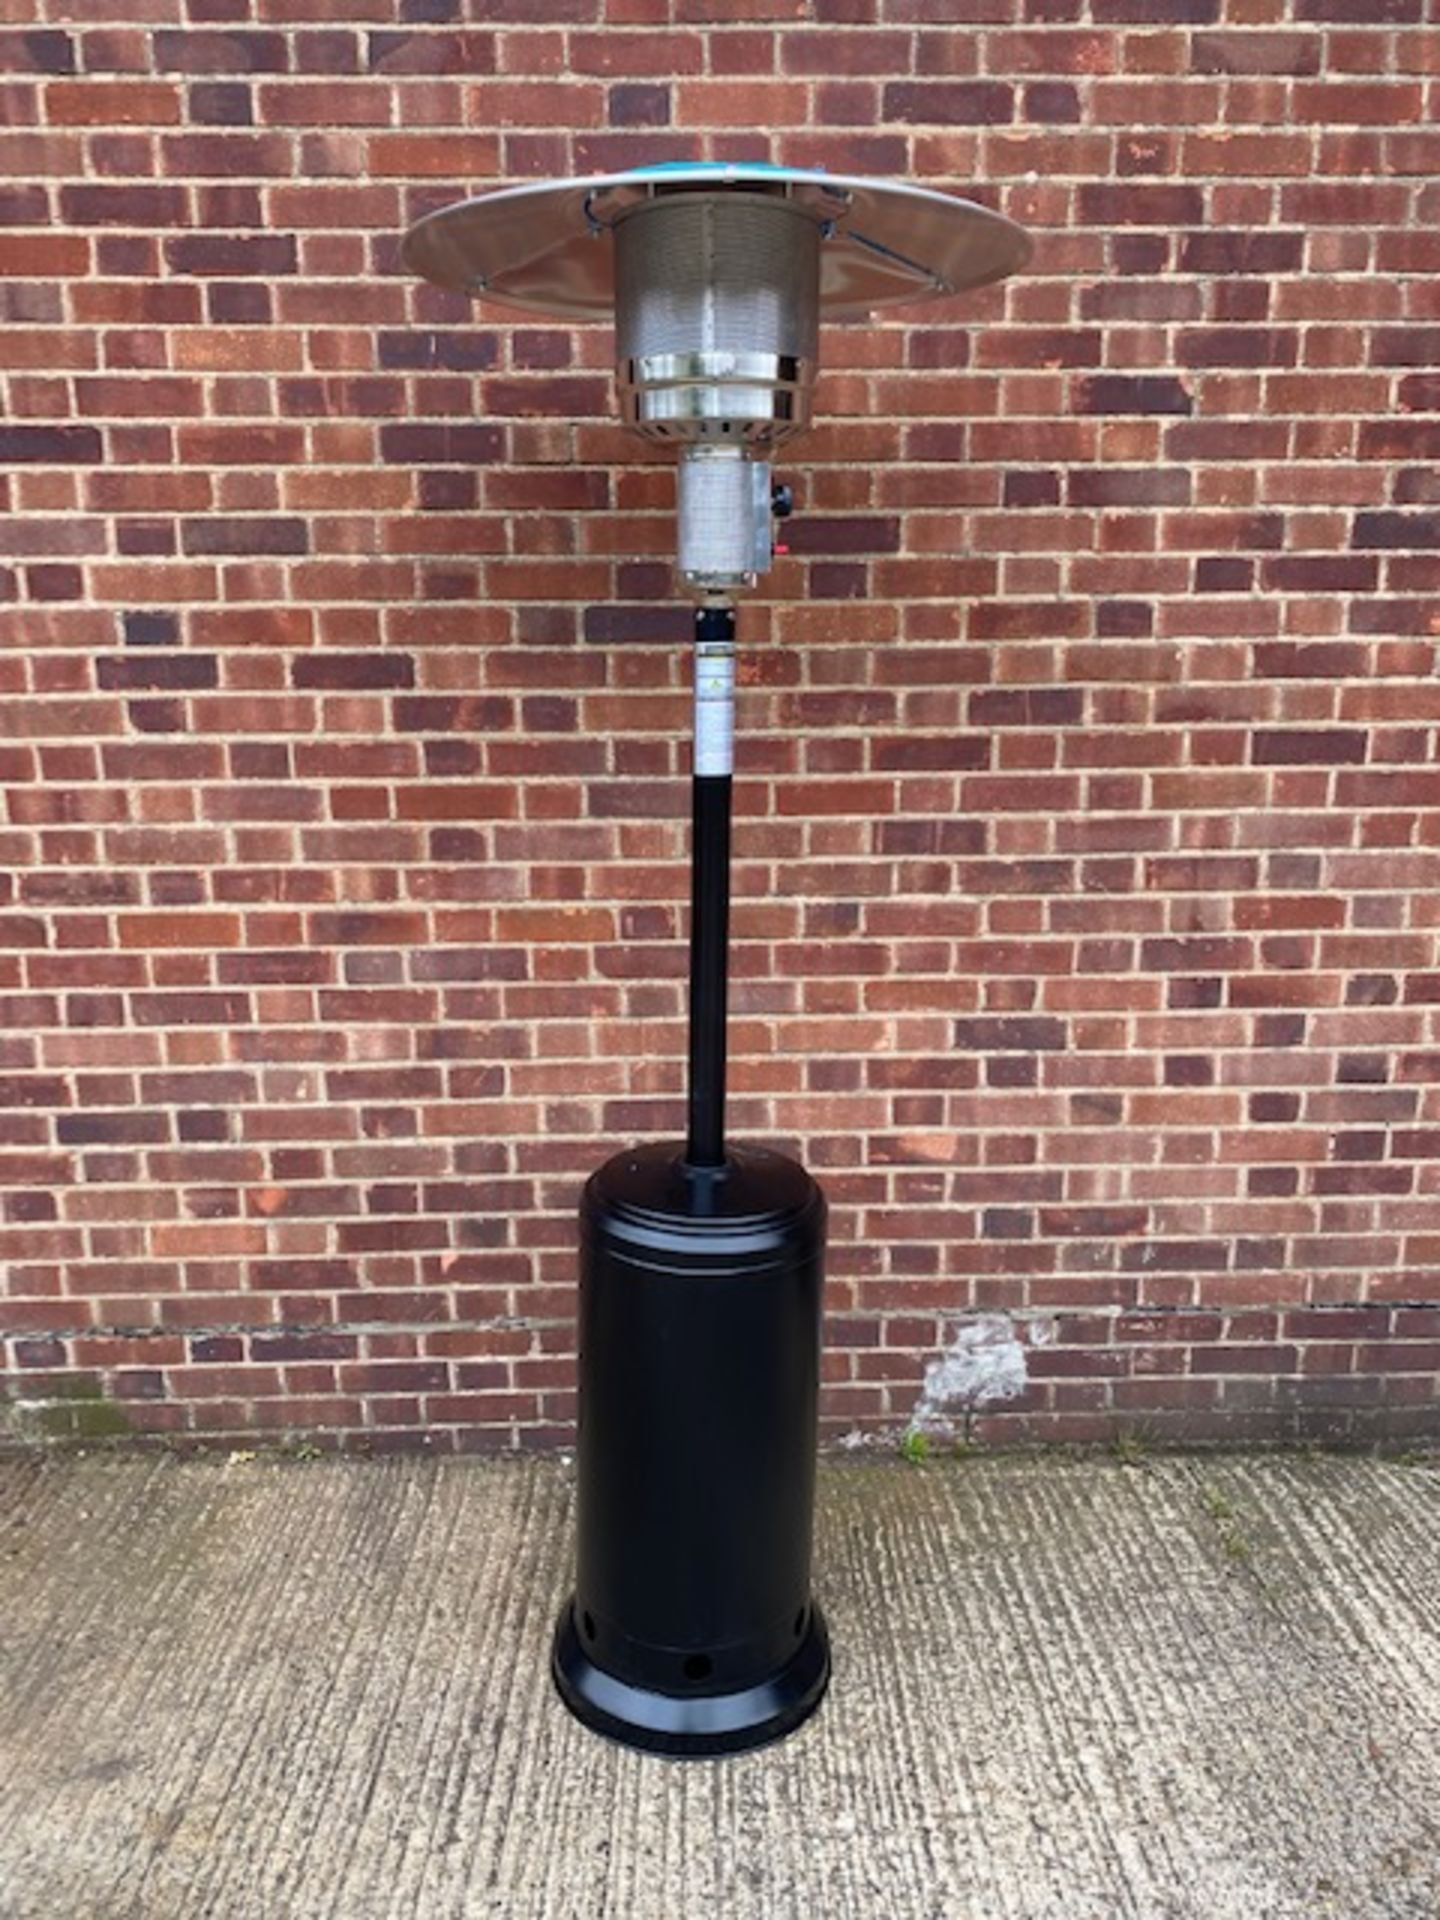 + VAT Brand New Chelsea Garden Company Garden Patio Heater With Cover - Item Is Available From - Image 3 of 9